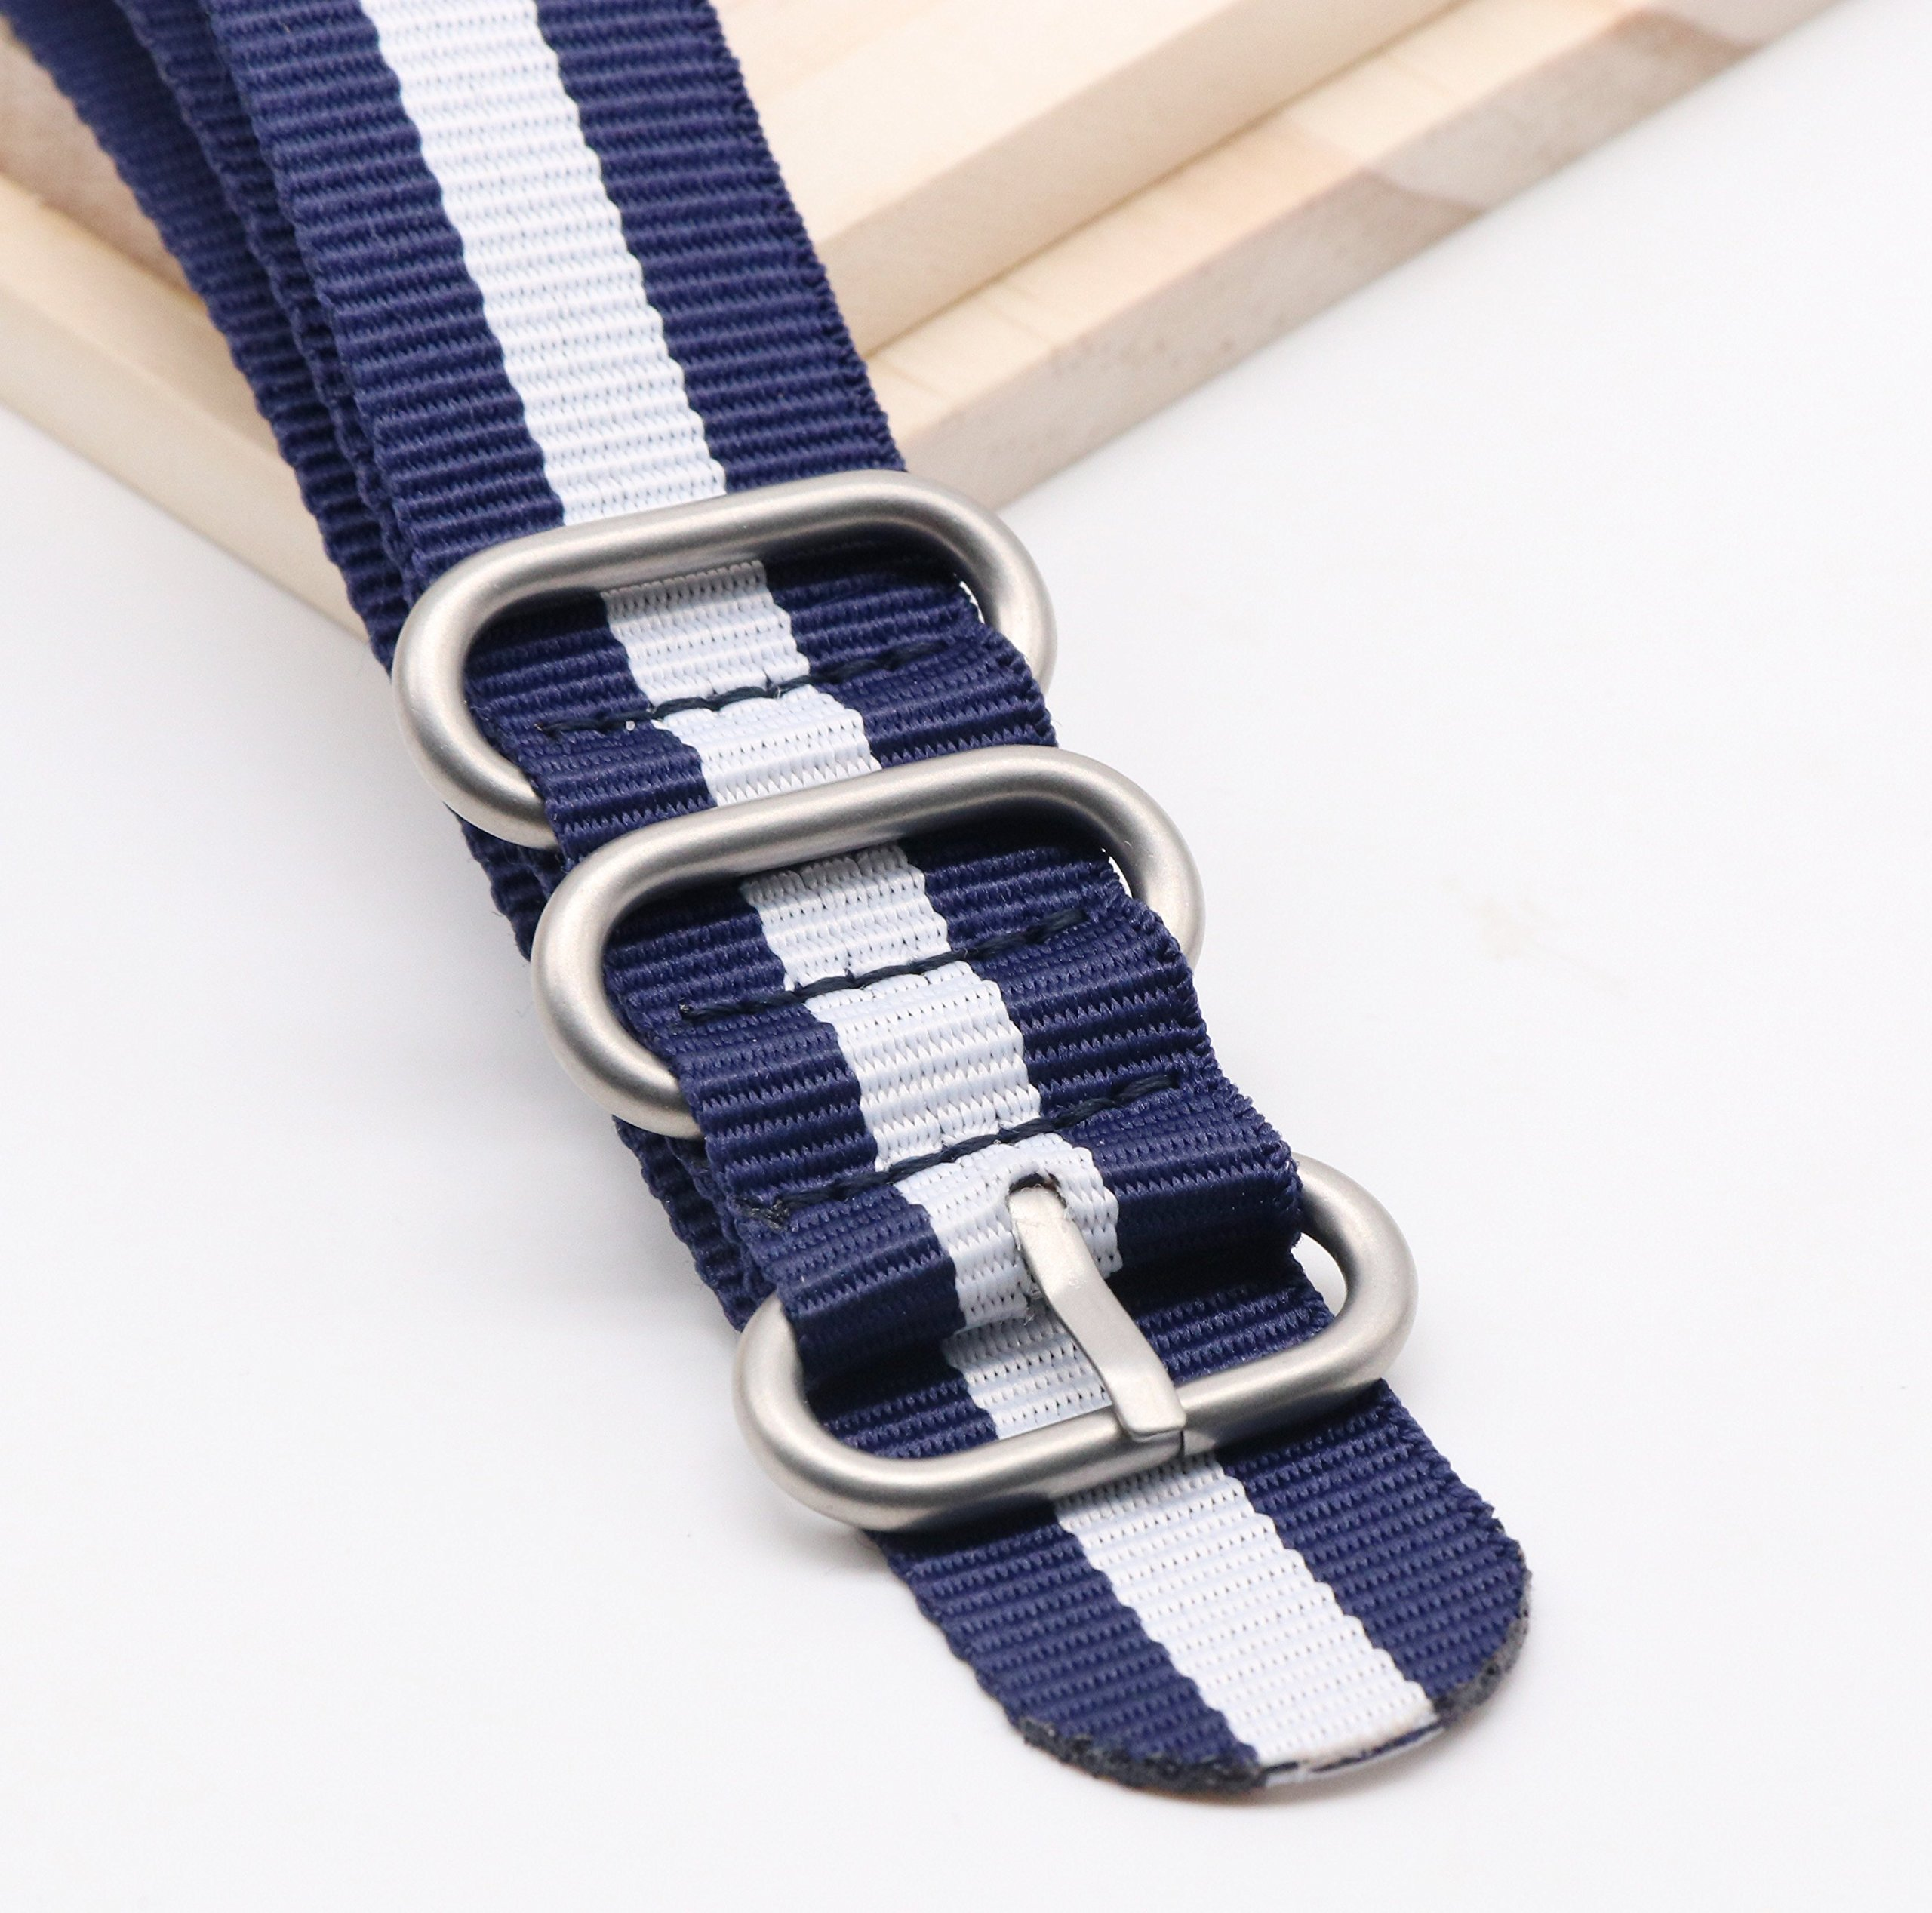 22mm Ballistic Nylon Watch Band with NATO Design 4 Pack by autulet (Image #2)